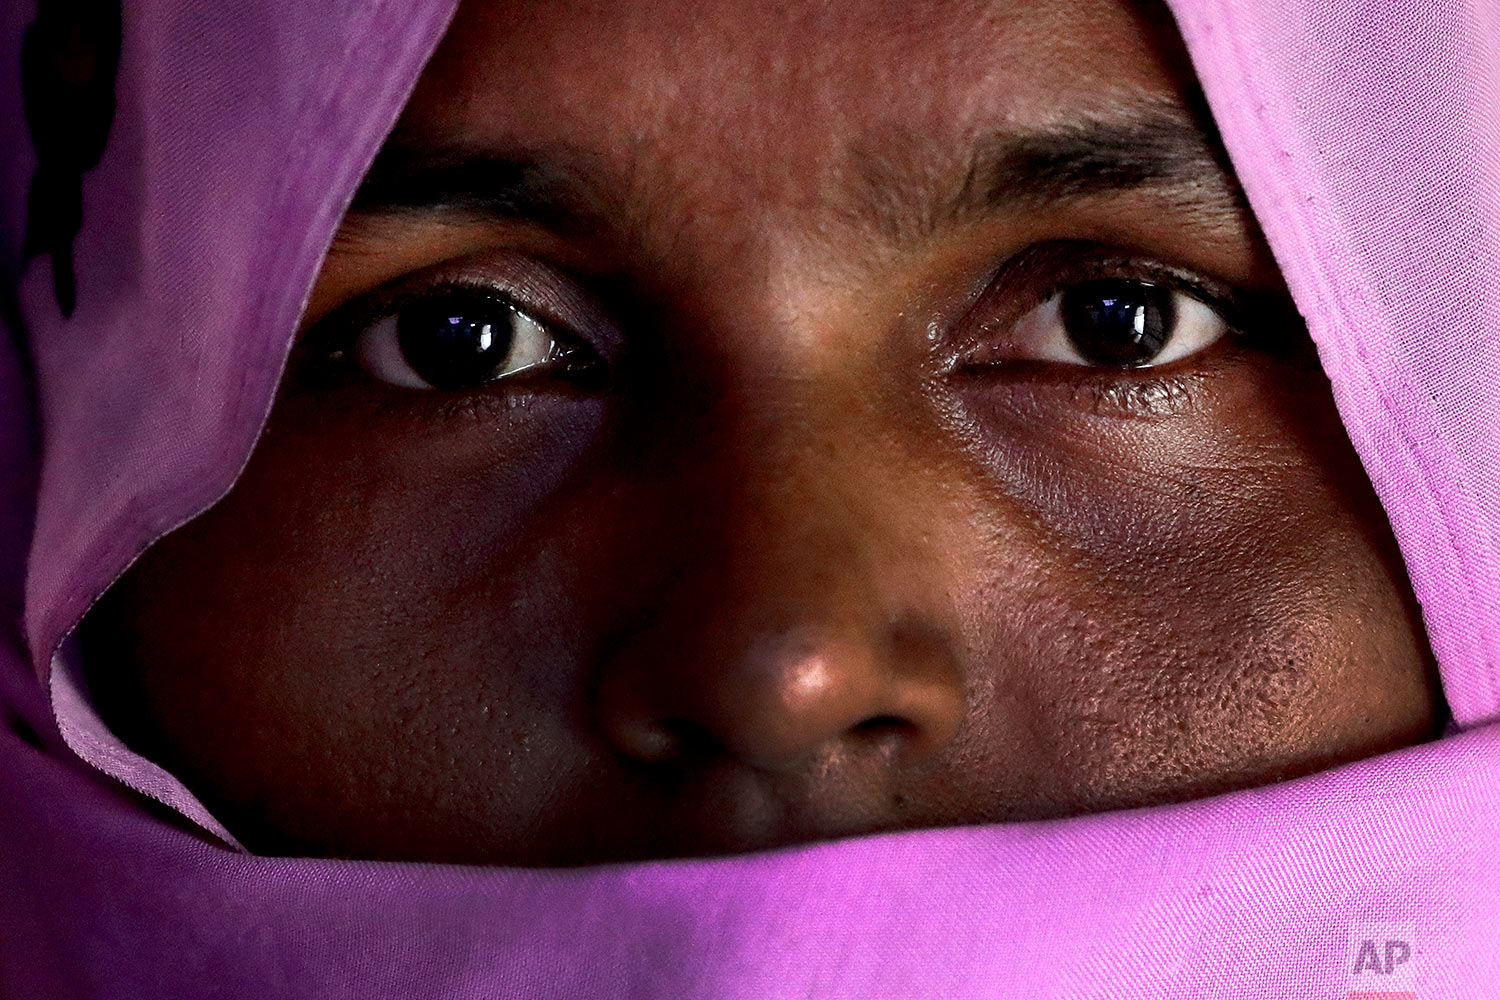 In this Sunday, Nov. 19, 2017, photo, H, 30, mother of six; three children killed, who says she was raped by members of Myanmar's armed forces in late August, is photographed in her friend's tent in Kutupalong refugee camp in Bangladesh.  (AP Photo/Wong Maye-E)